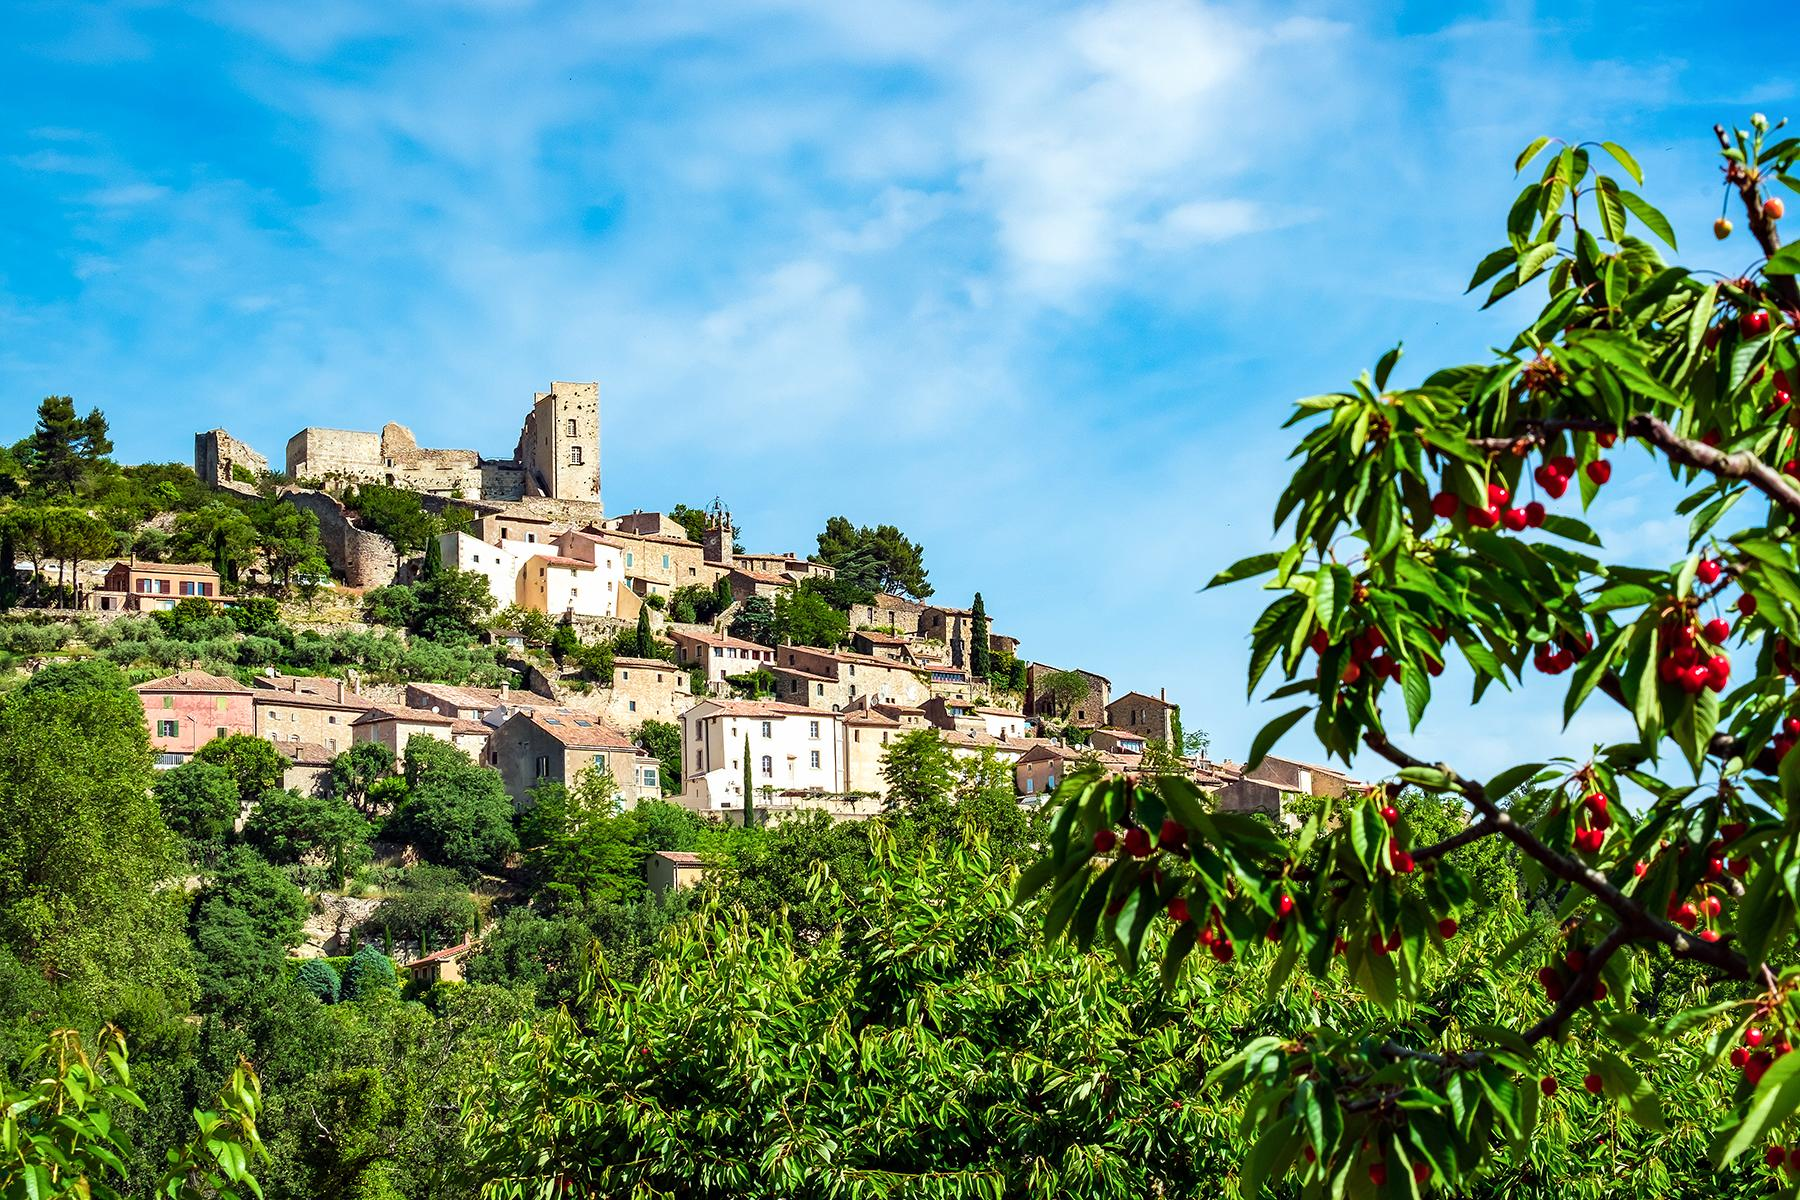 15_PicturePerfectProvenceTowns__Lacoste_shutterstock_650445604